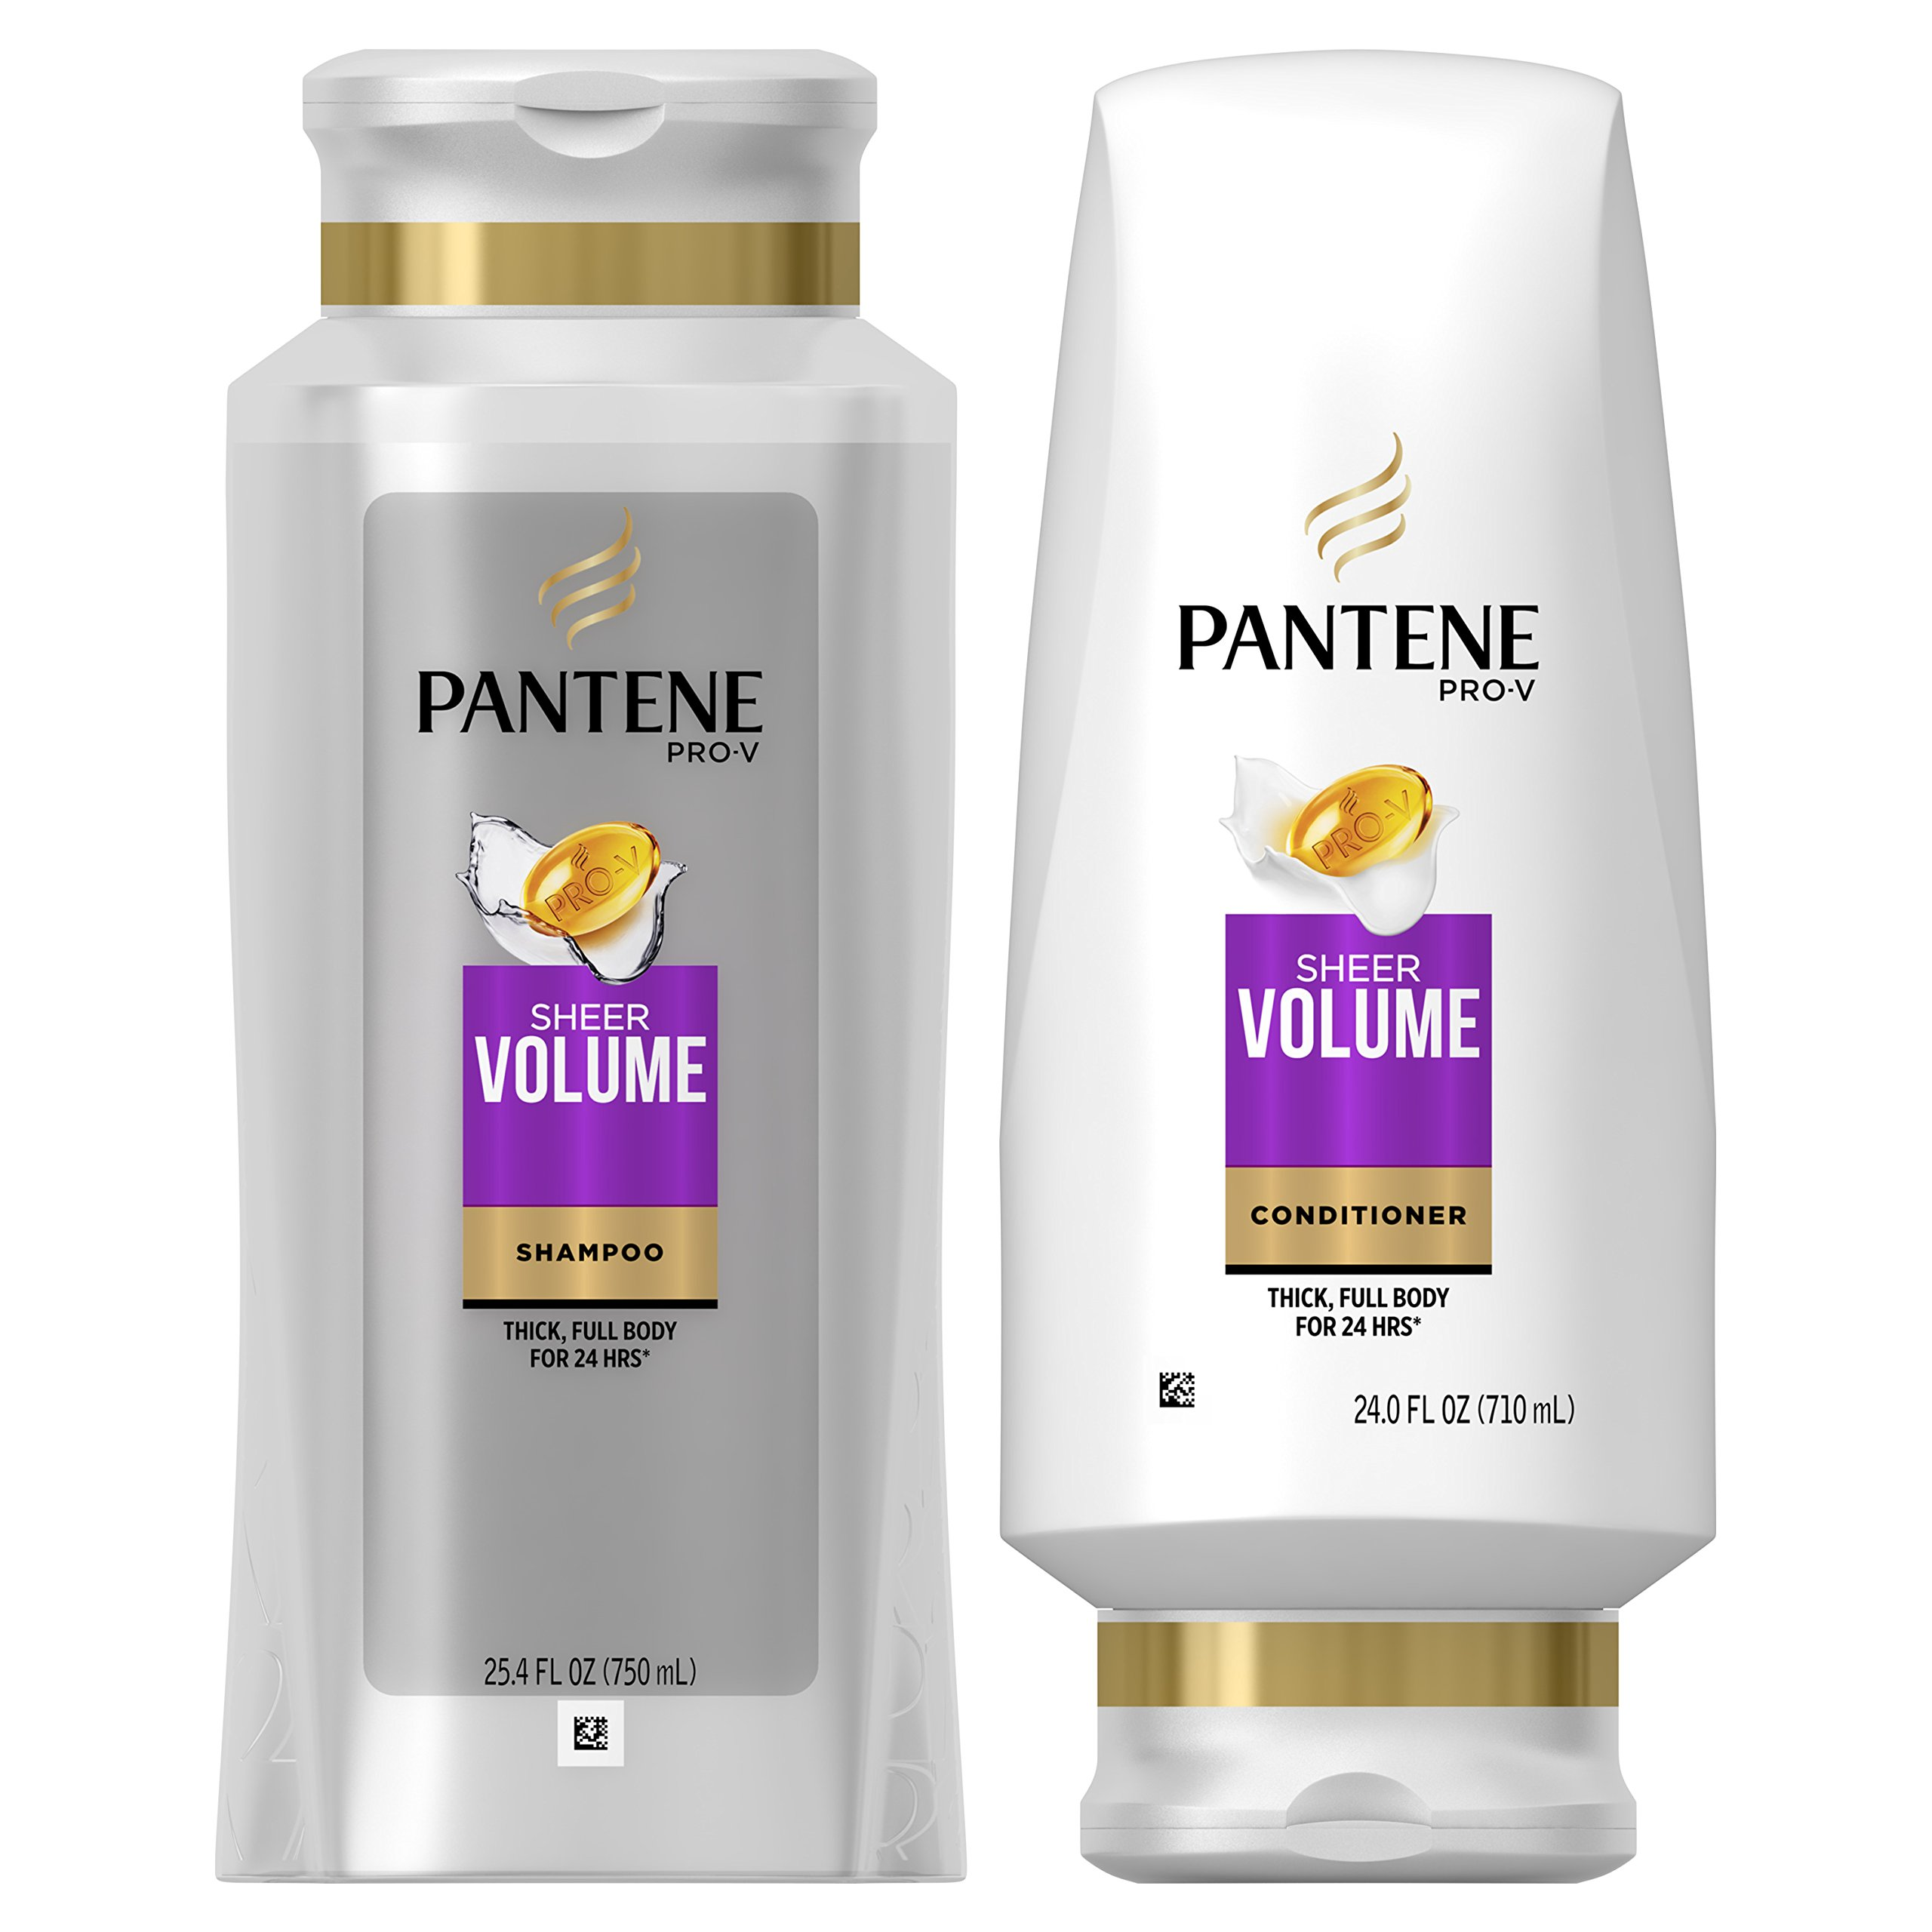 Pantene Volumizing Shampoo and Sulfate Free Conditioner for Fine Hair, Sheer Volume, 25.4 Fl Oz (Pack of 2)